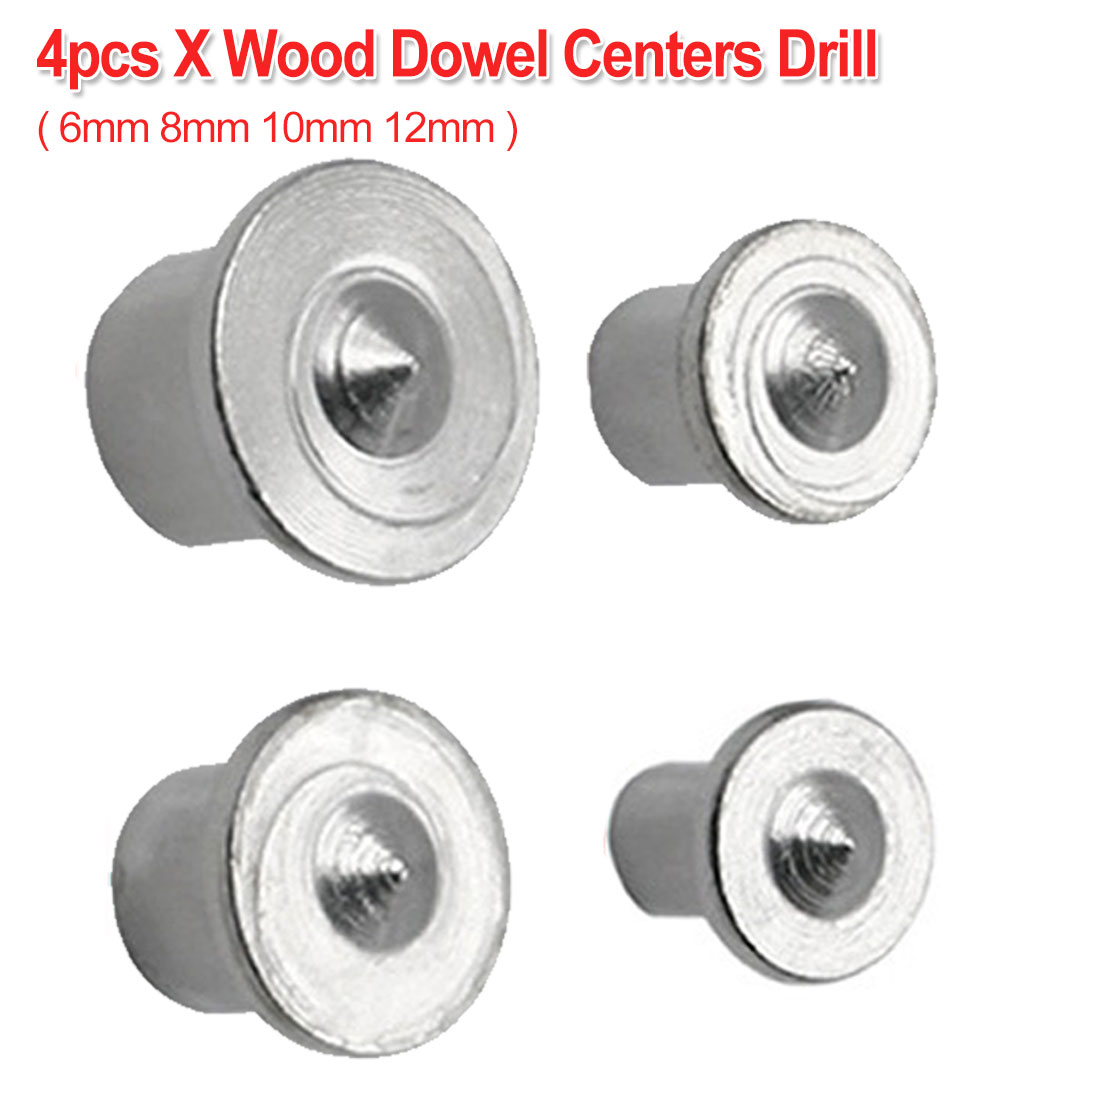 4pcs 6mm 8mm 10mm 12mm Center Dowel Tenon A3 Material Point Set Tool Joint Alignment Pin Dowelling Hole Wood Timber Marker